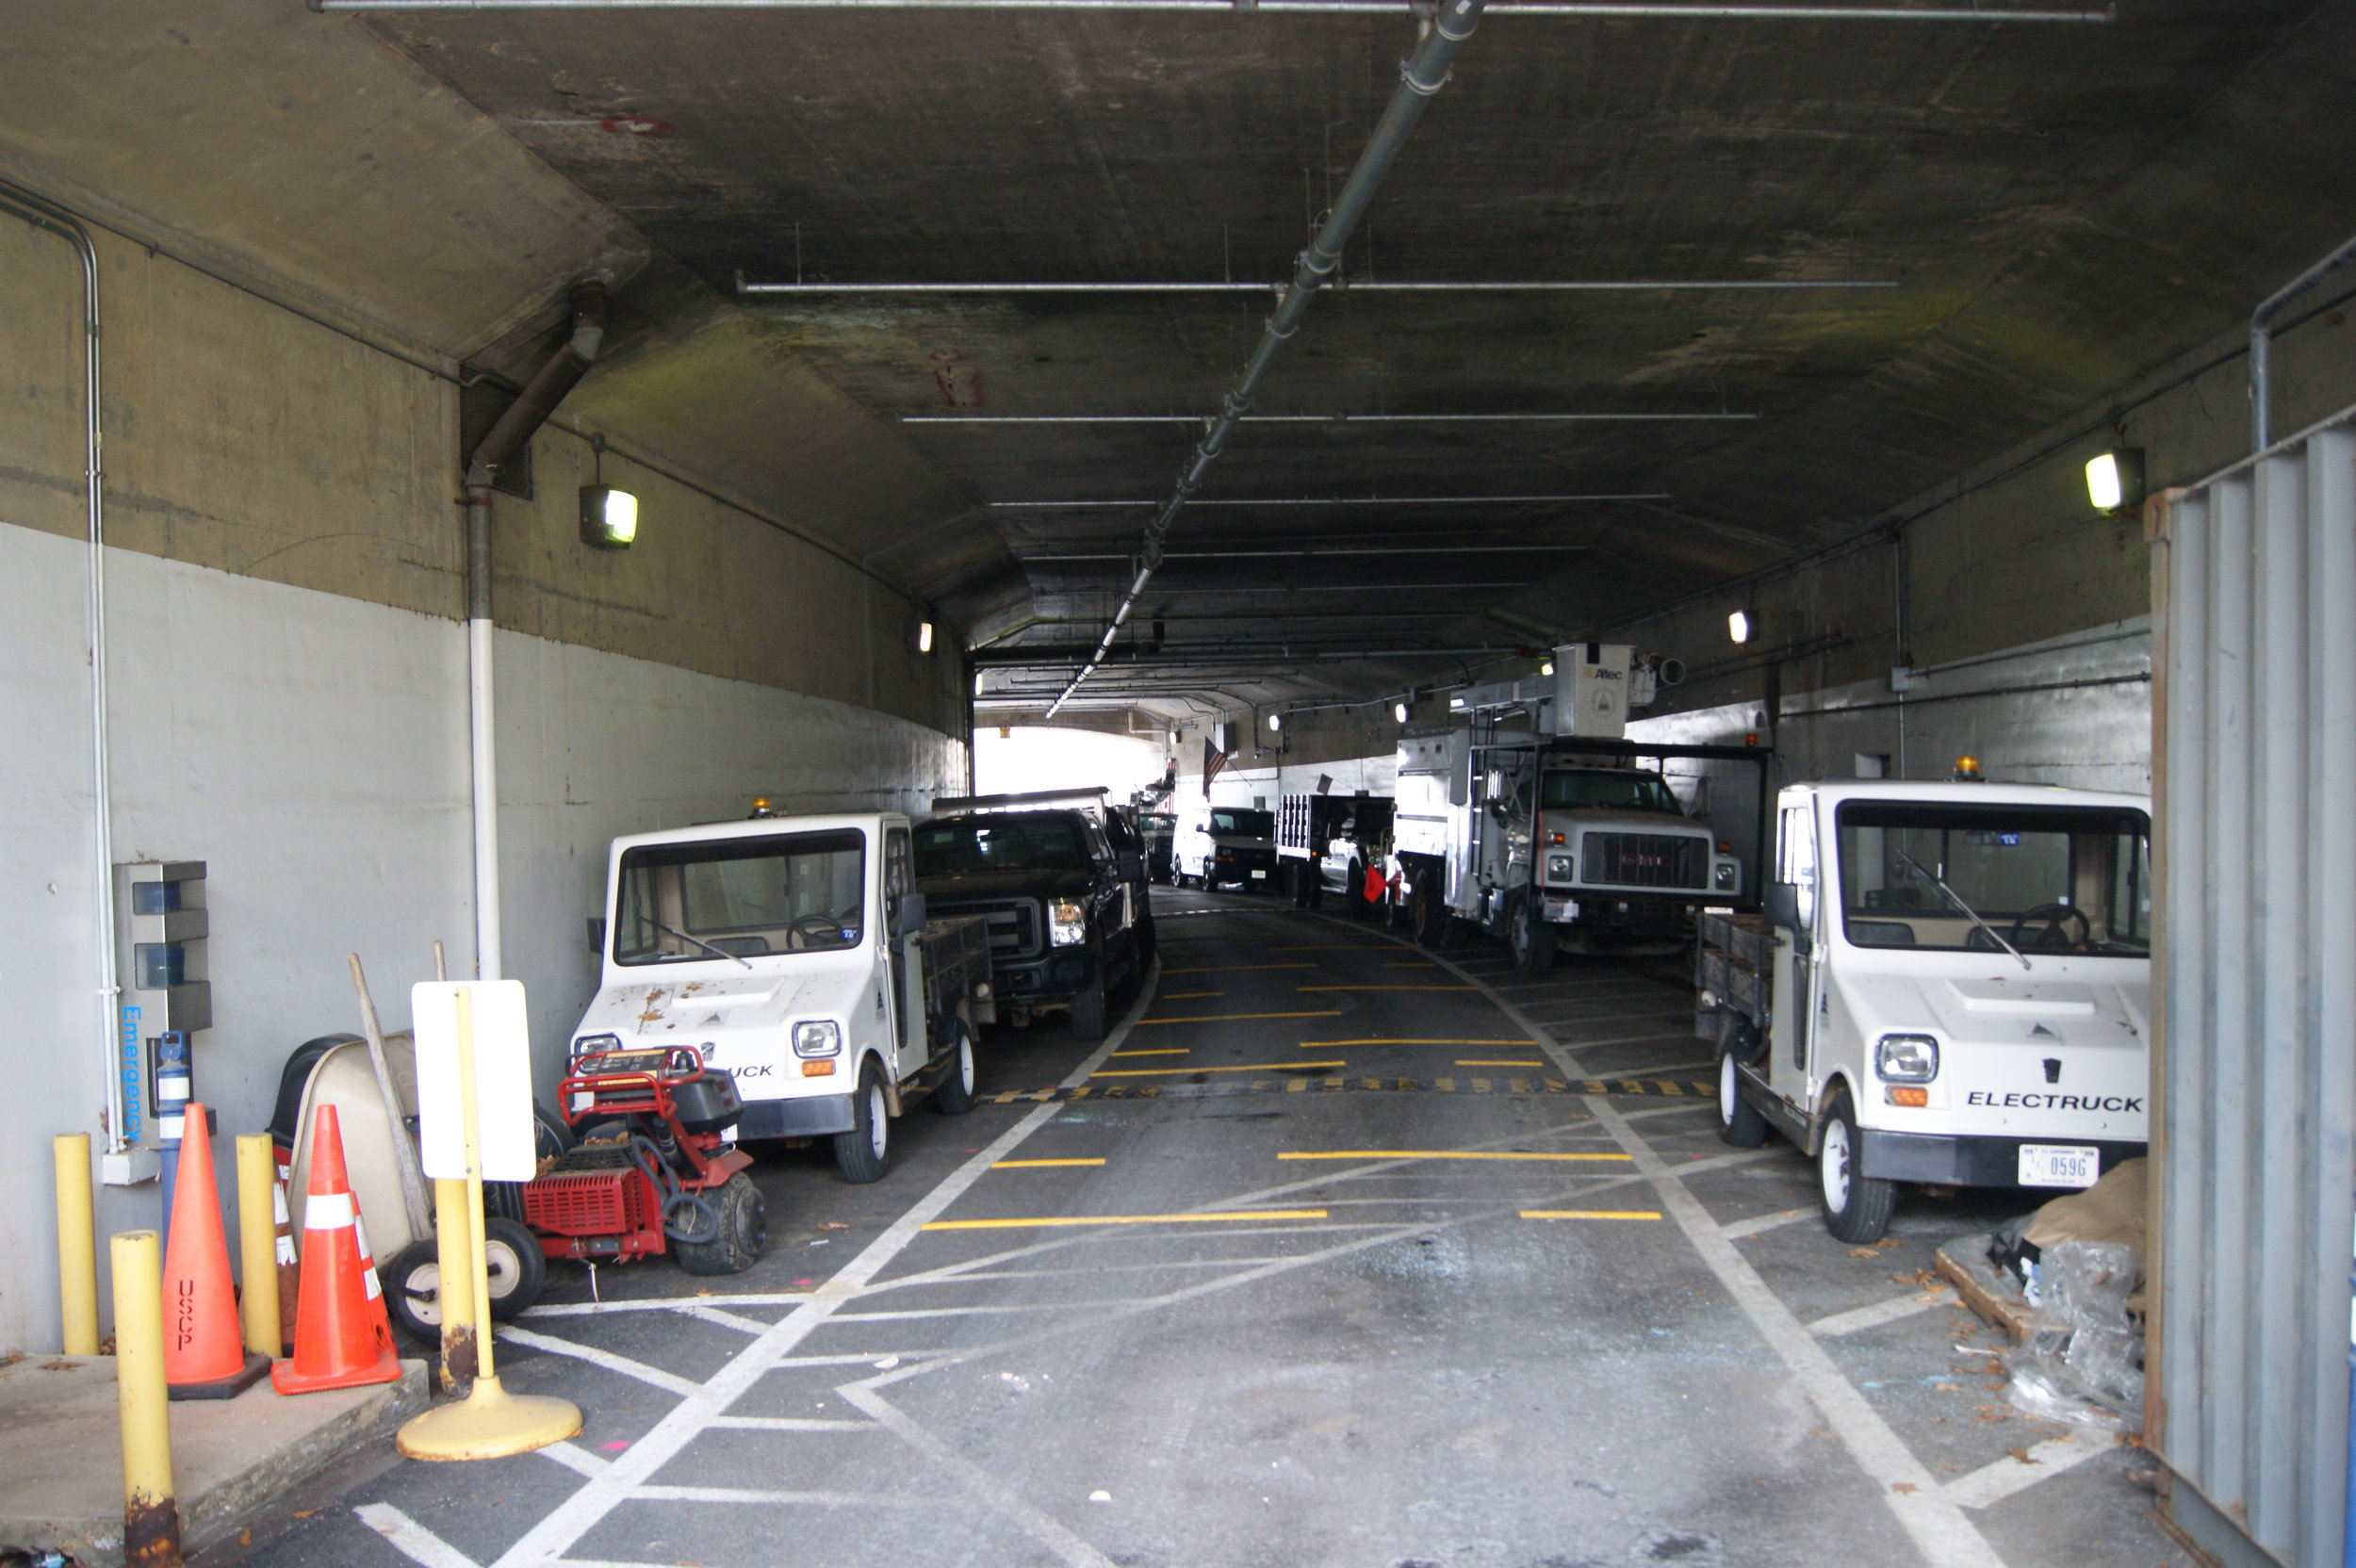 The C Street tunnel on Capitol Hill is currently used as an Architect of the Capitol parking garage. Photo: Elliot Carter